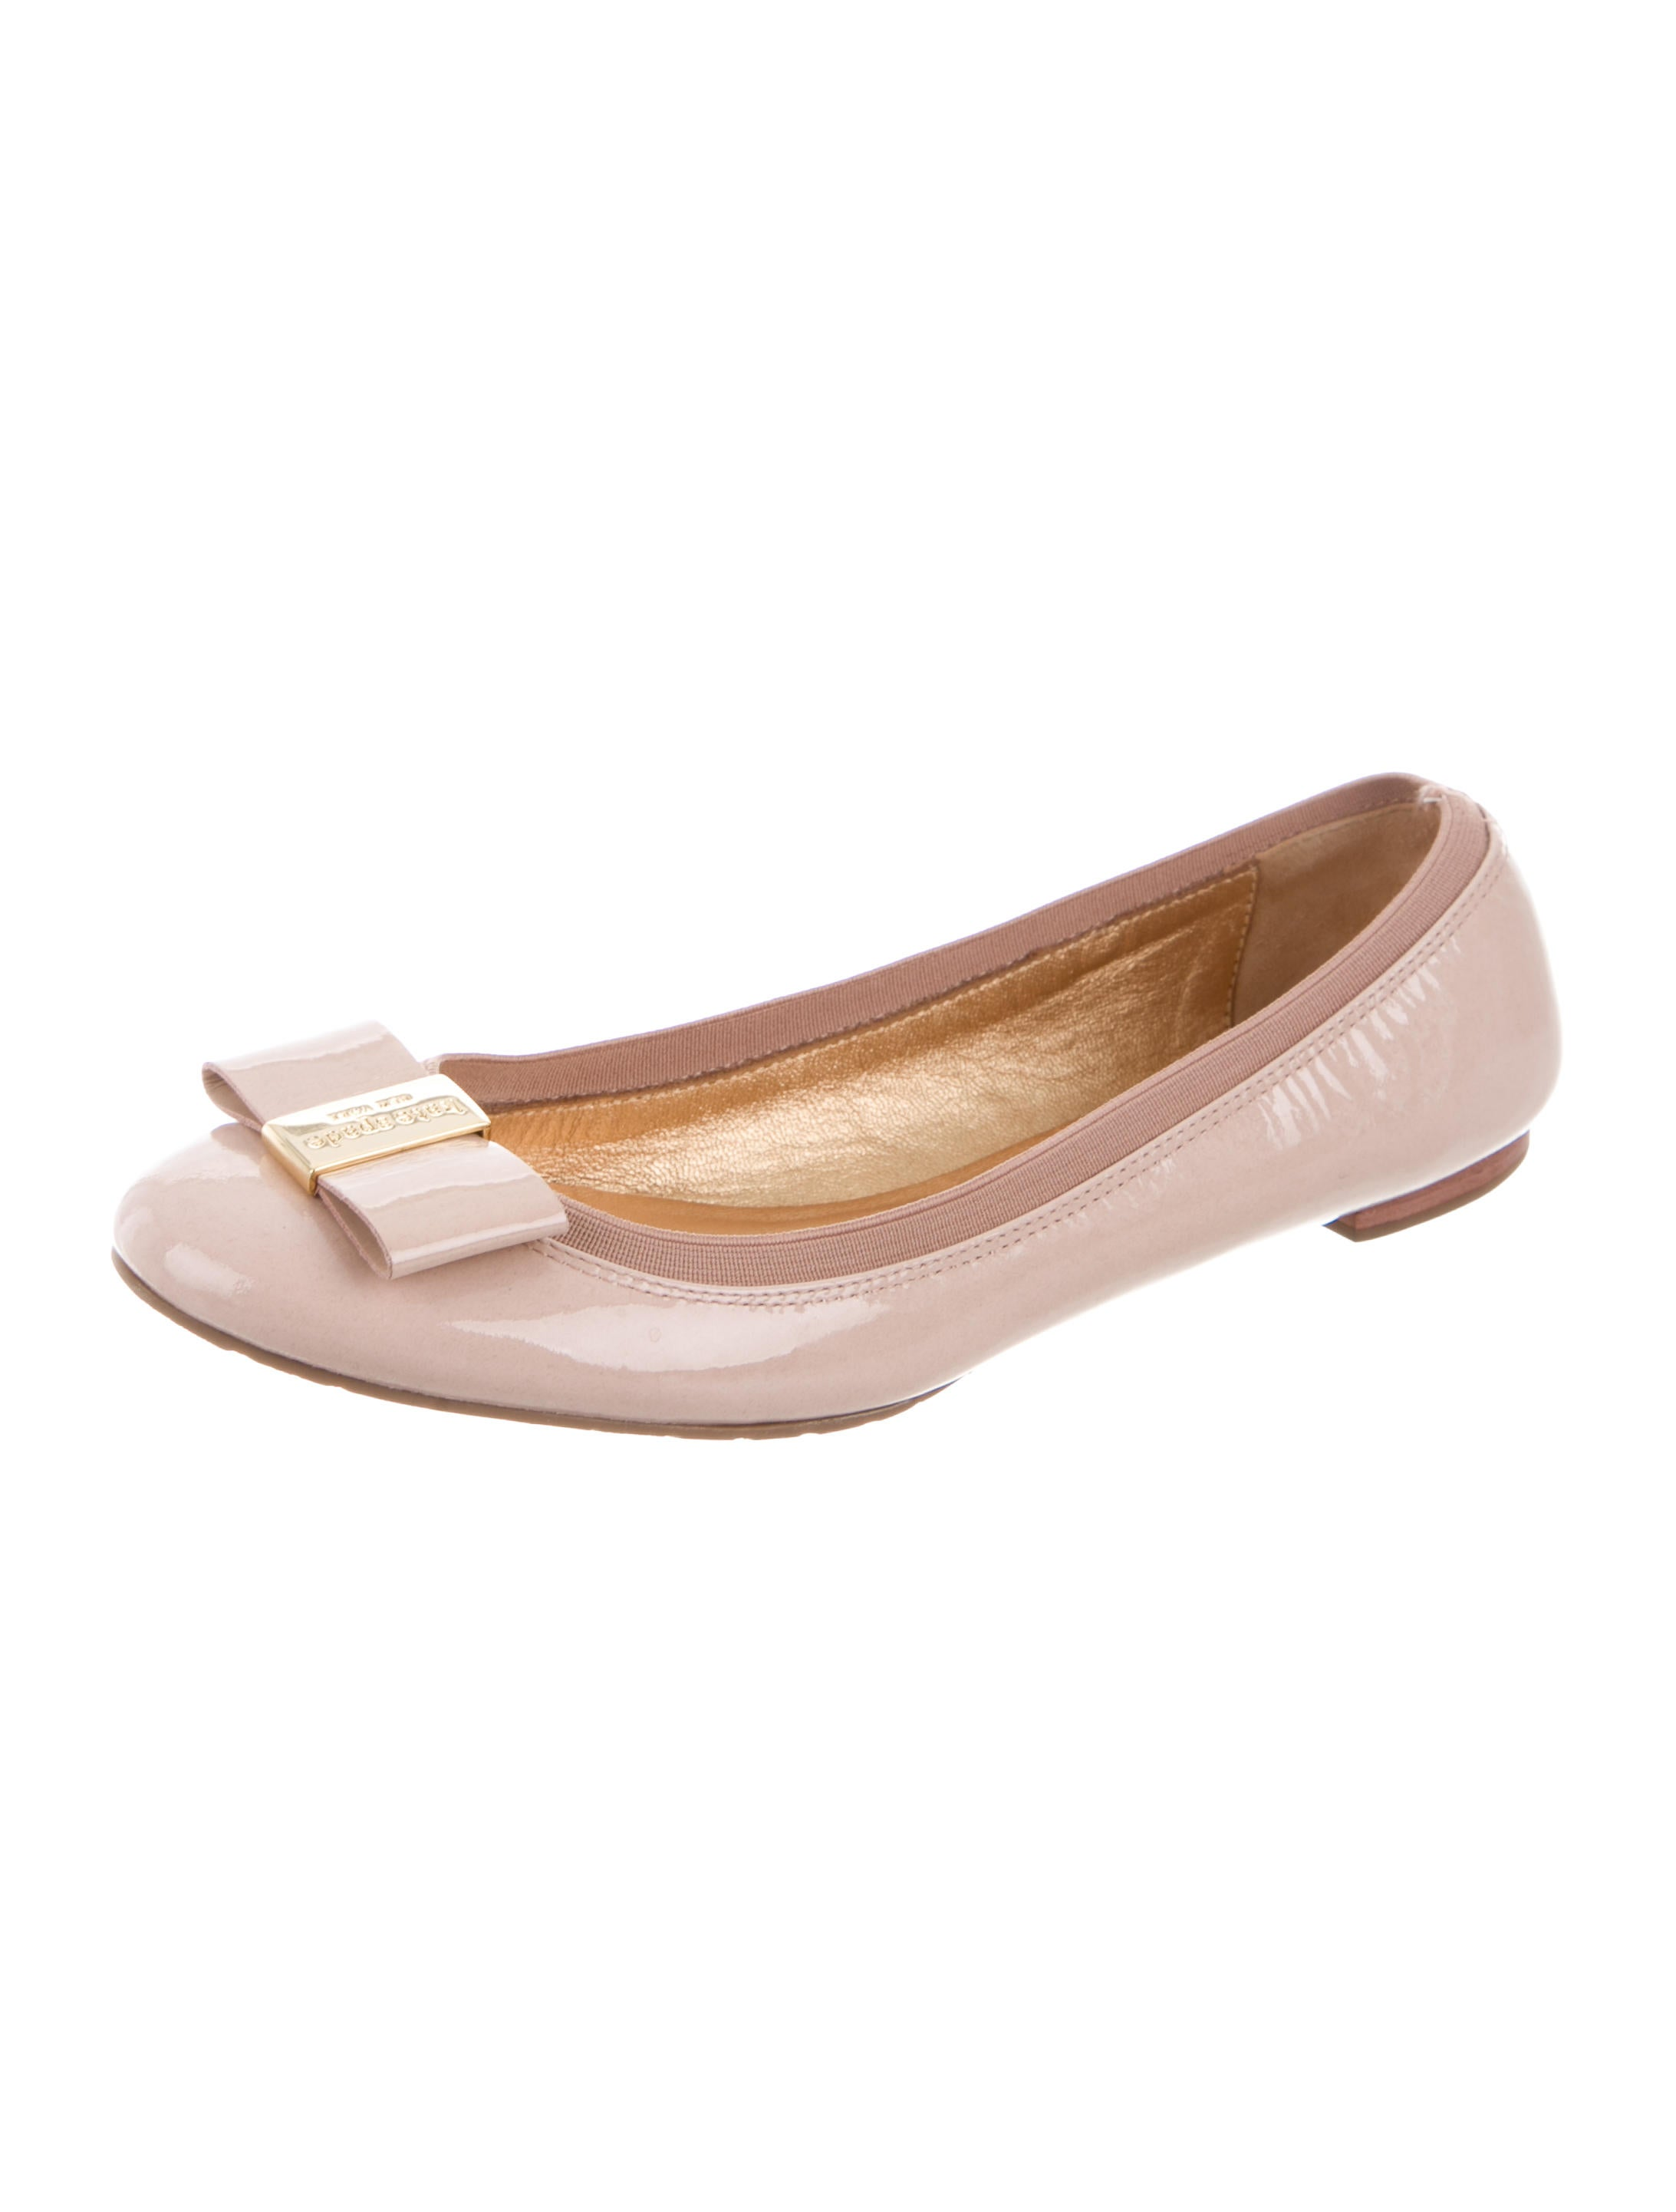 Kate spade new york patent leather bow flats shoes for Kate spade new york flats